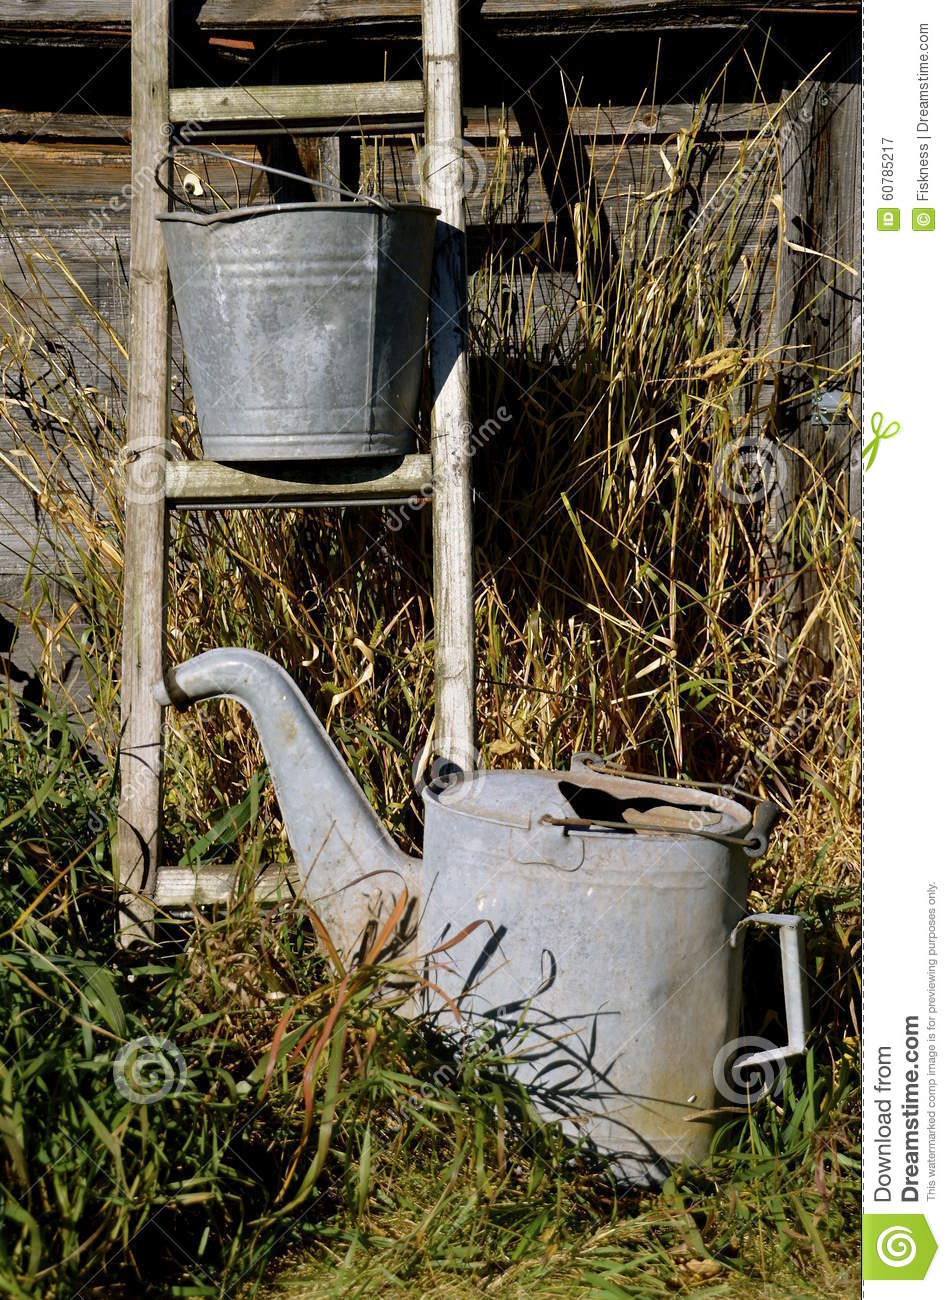 Ladder, water sprinkler, and a pail